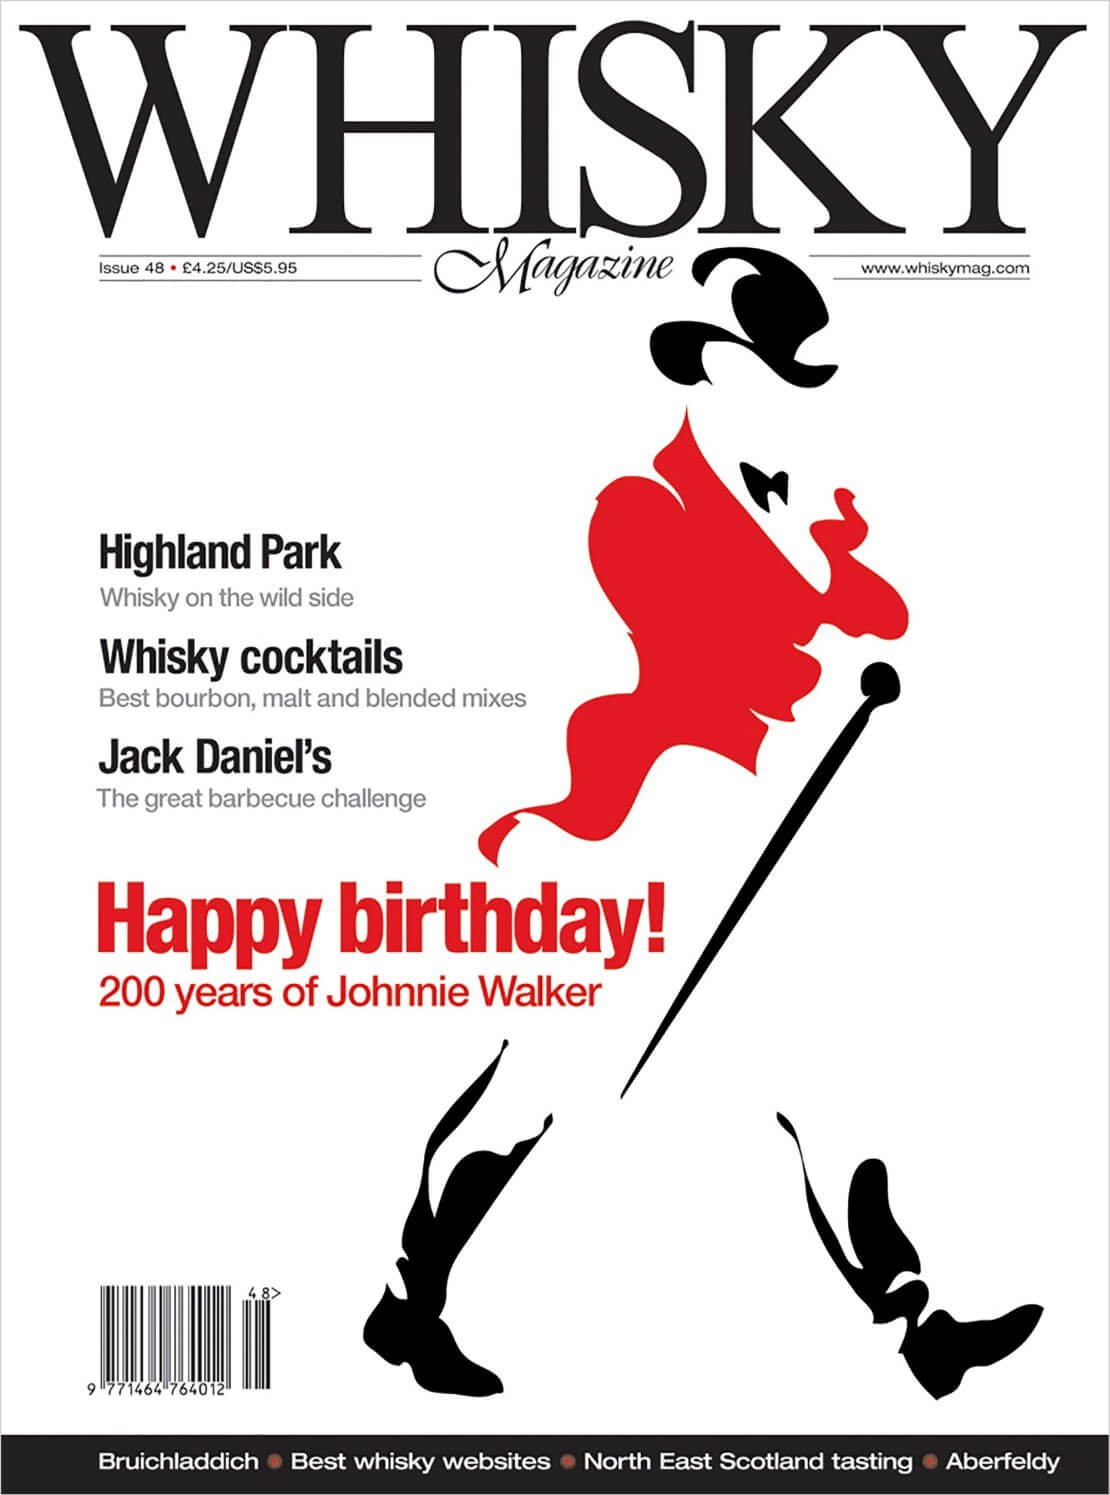 Happy Birthday Johnnie Walker Highland Park Whisky Cocktails Jack Daniel's barbecue challenge Bruichladdich Best whisky websites